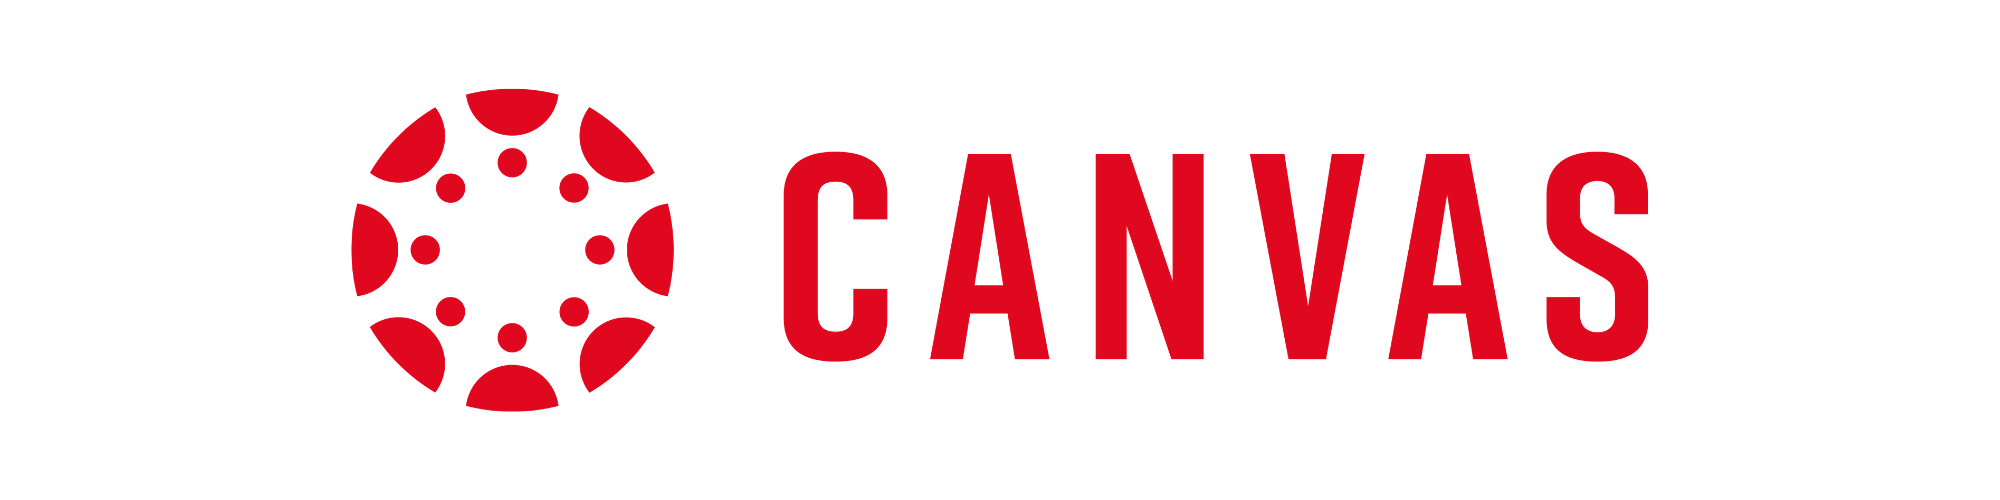 red canvas logo